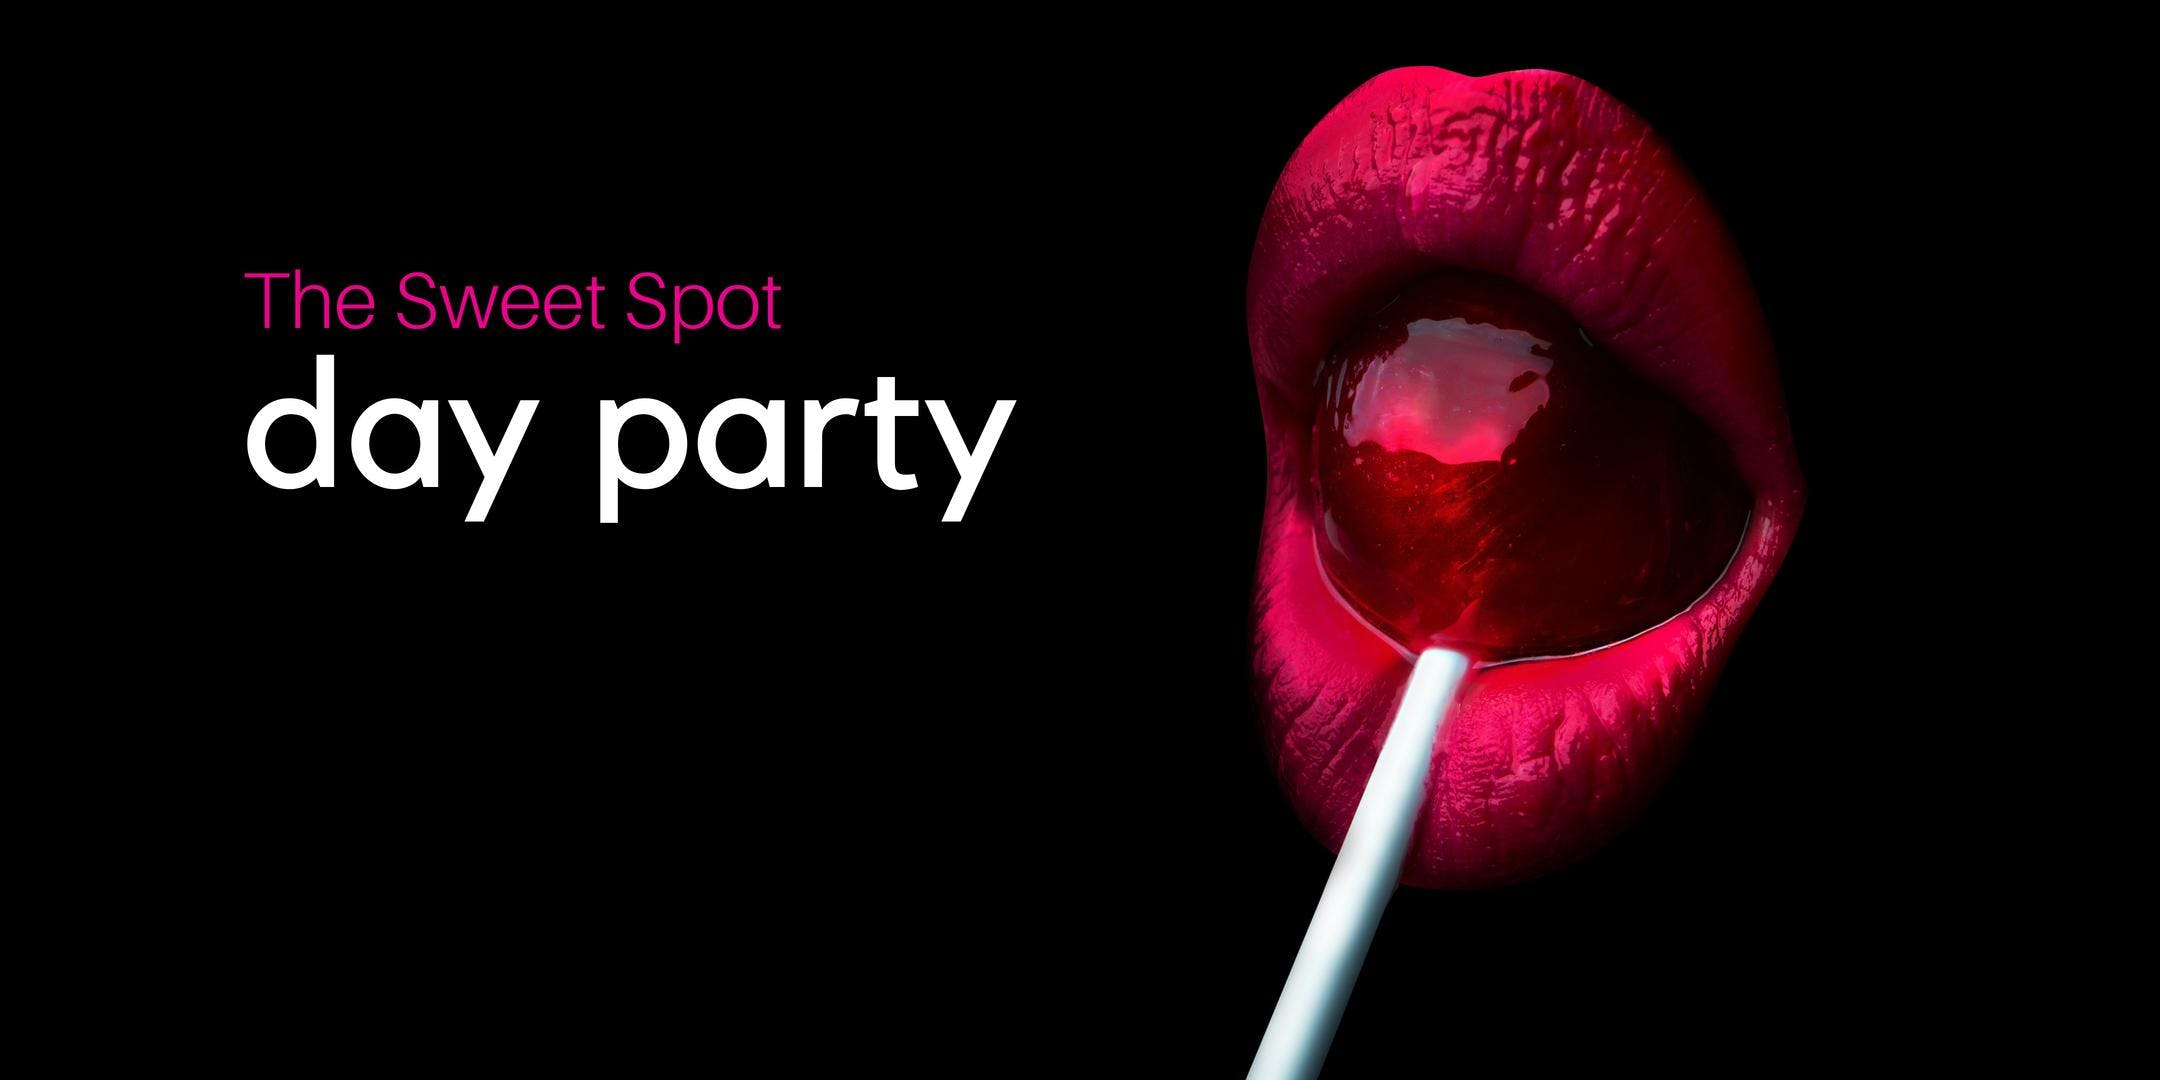 The Sweet Spot DAY PARTY